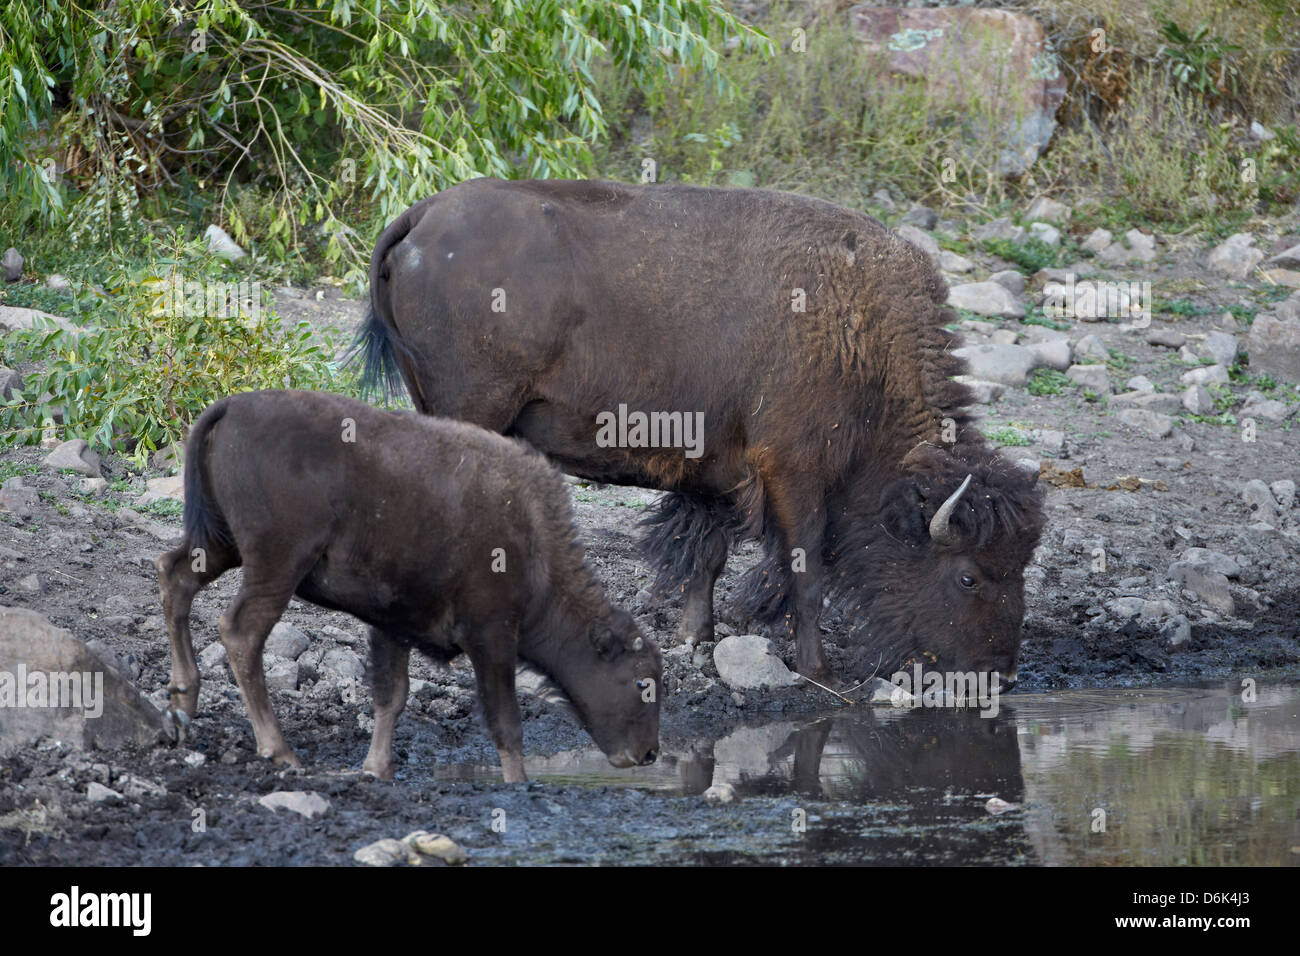 Bison (Bison bison) cow and calf drinking from a pond, Custer State Park, South Dakota, United States of America, - Stock Image